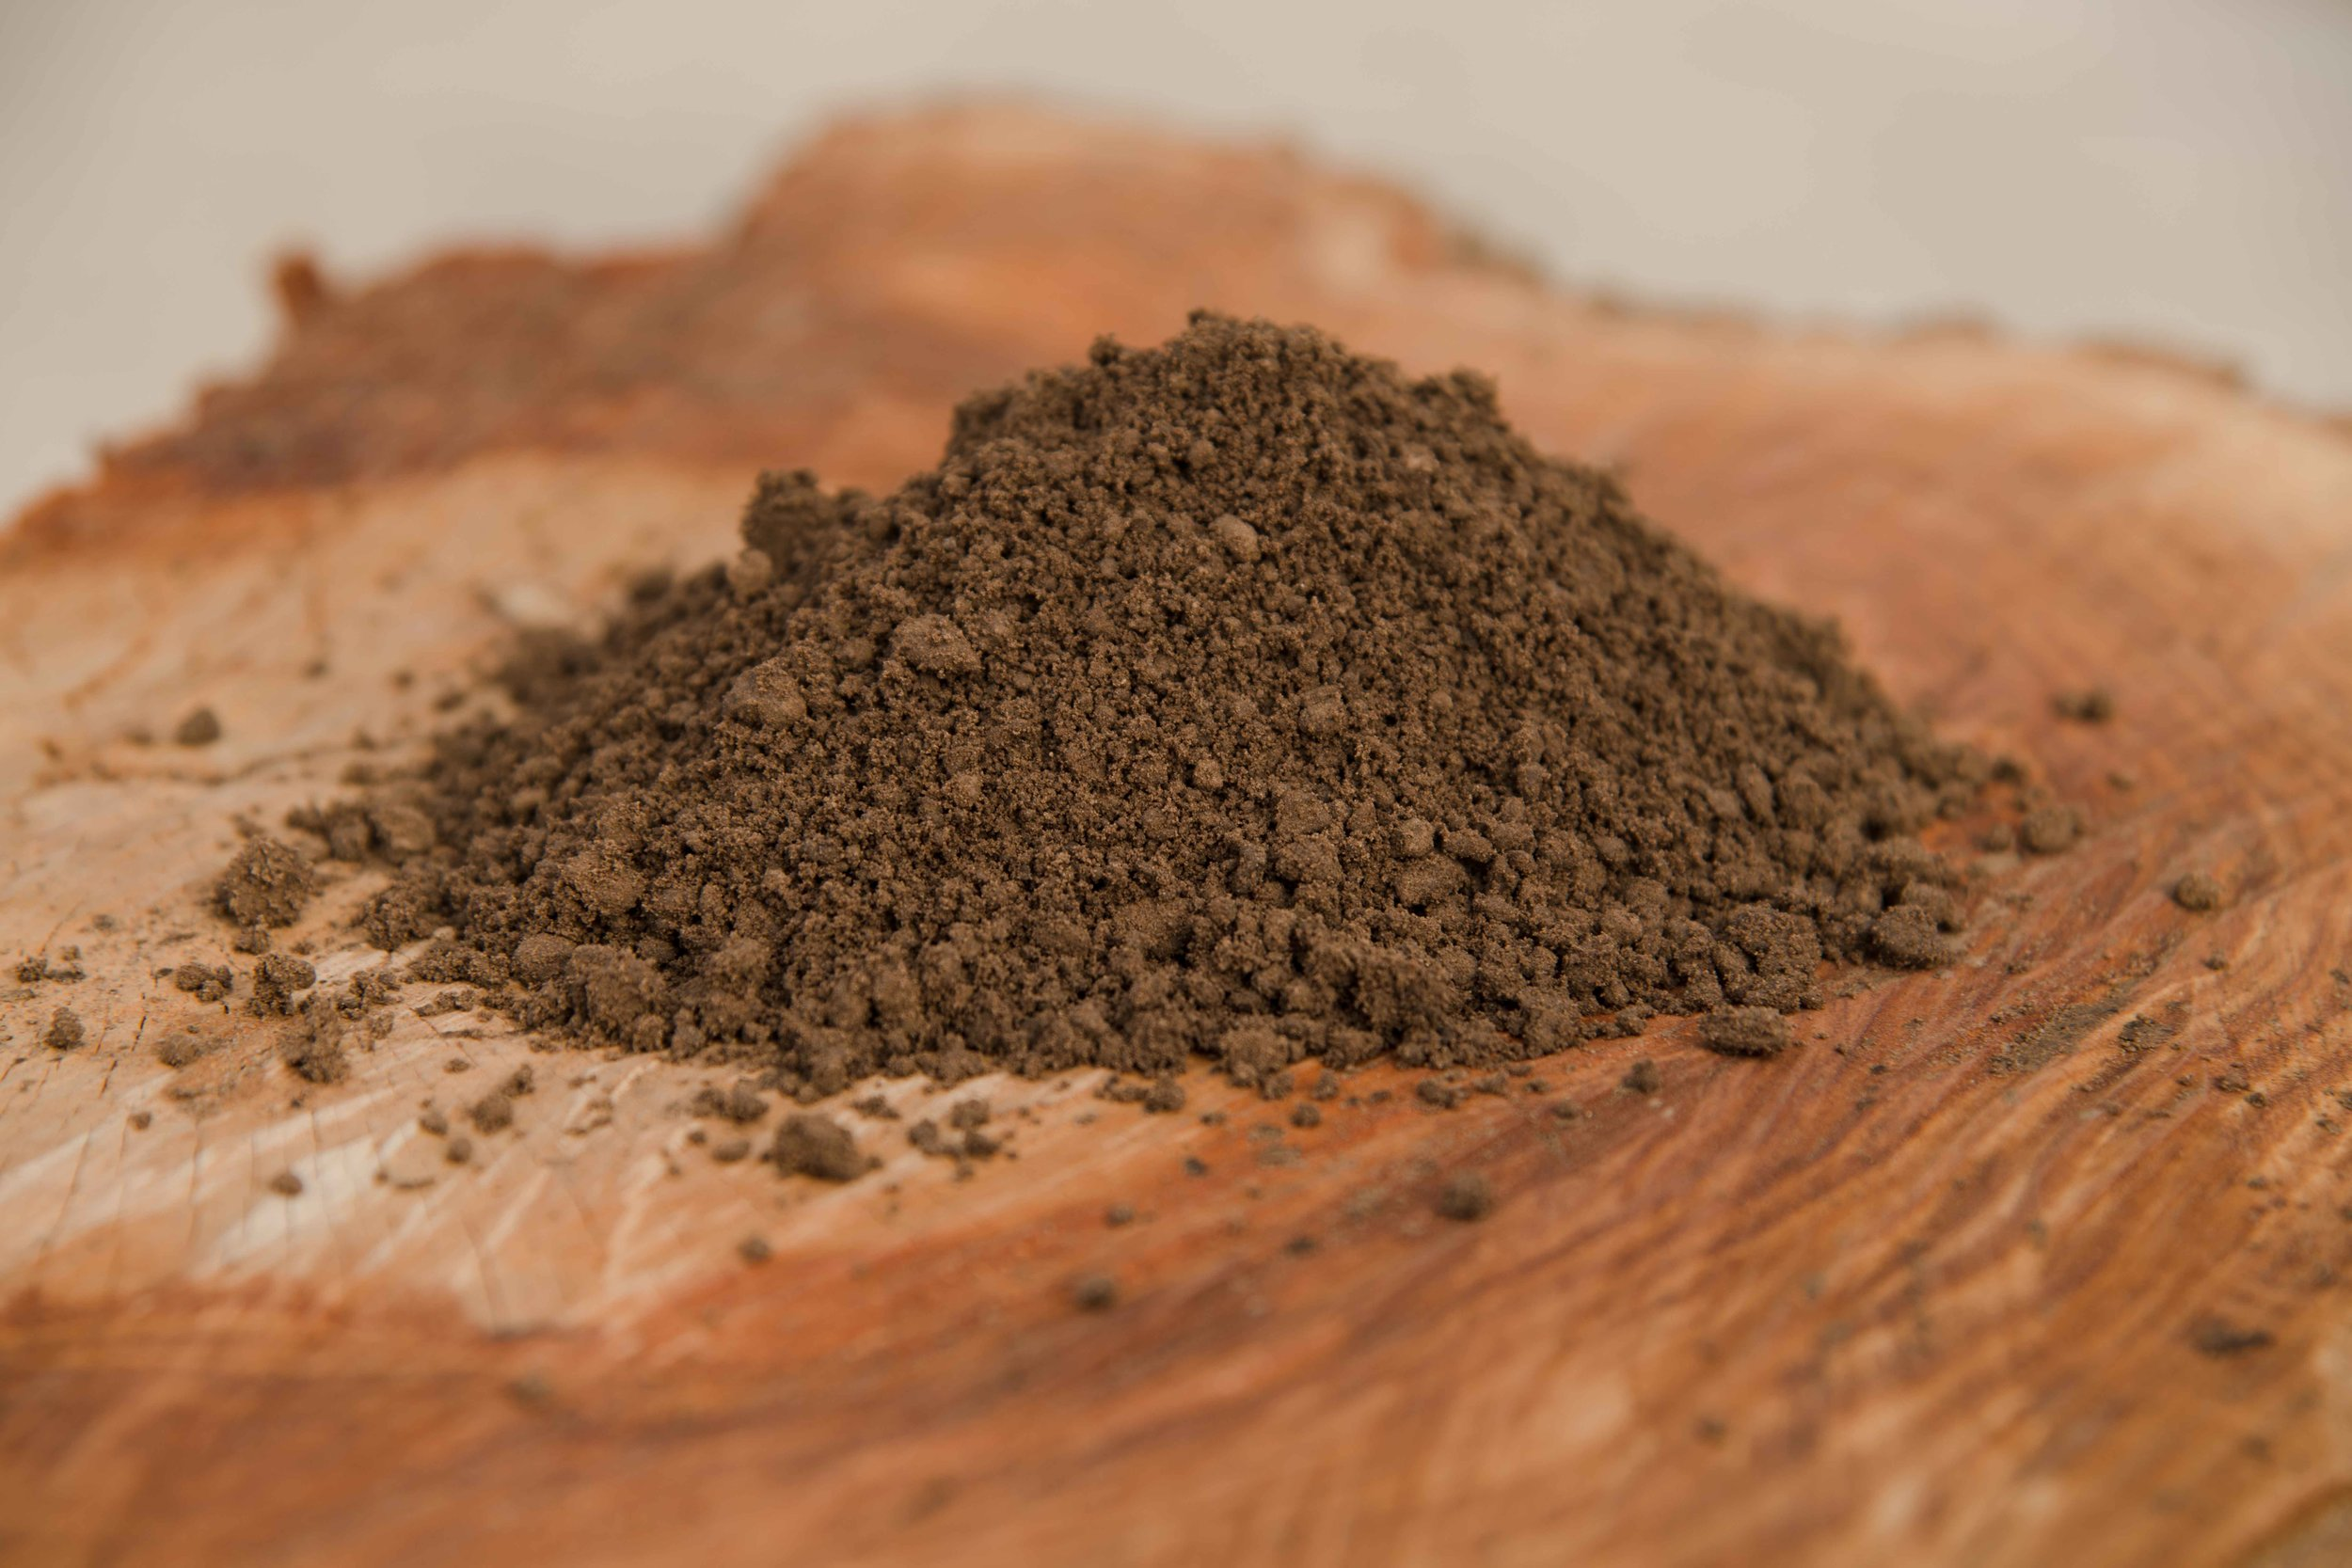 Top Soil - Get back to basics with this mineral rich Loam, a perfect blend of sand, silt, natural clay and broken-down organic matter - called humus. Our product is screened before loading and will provide the nutrients needed to promote consistent growth.